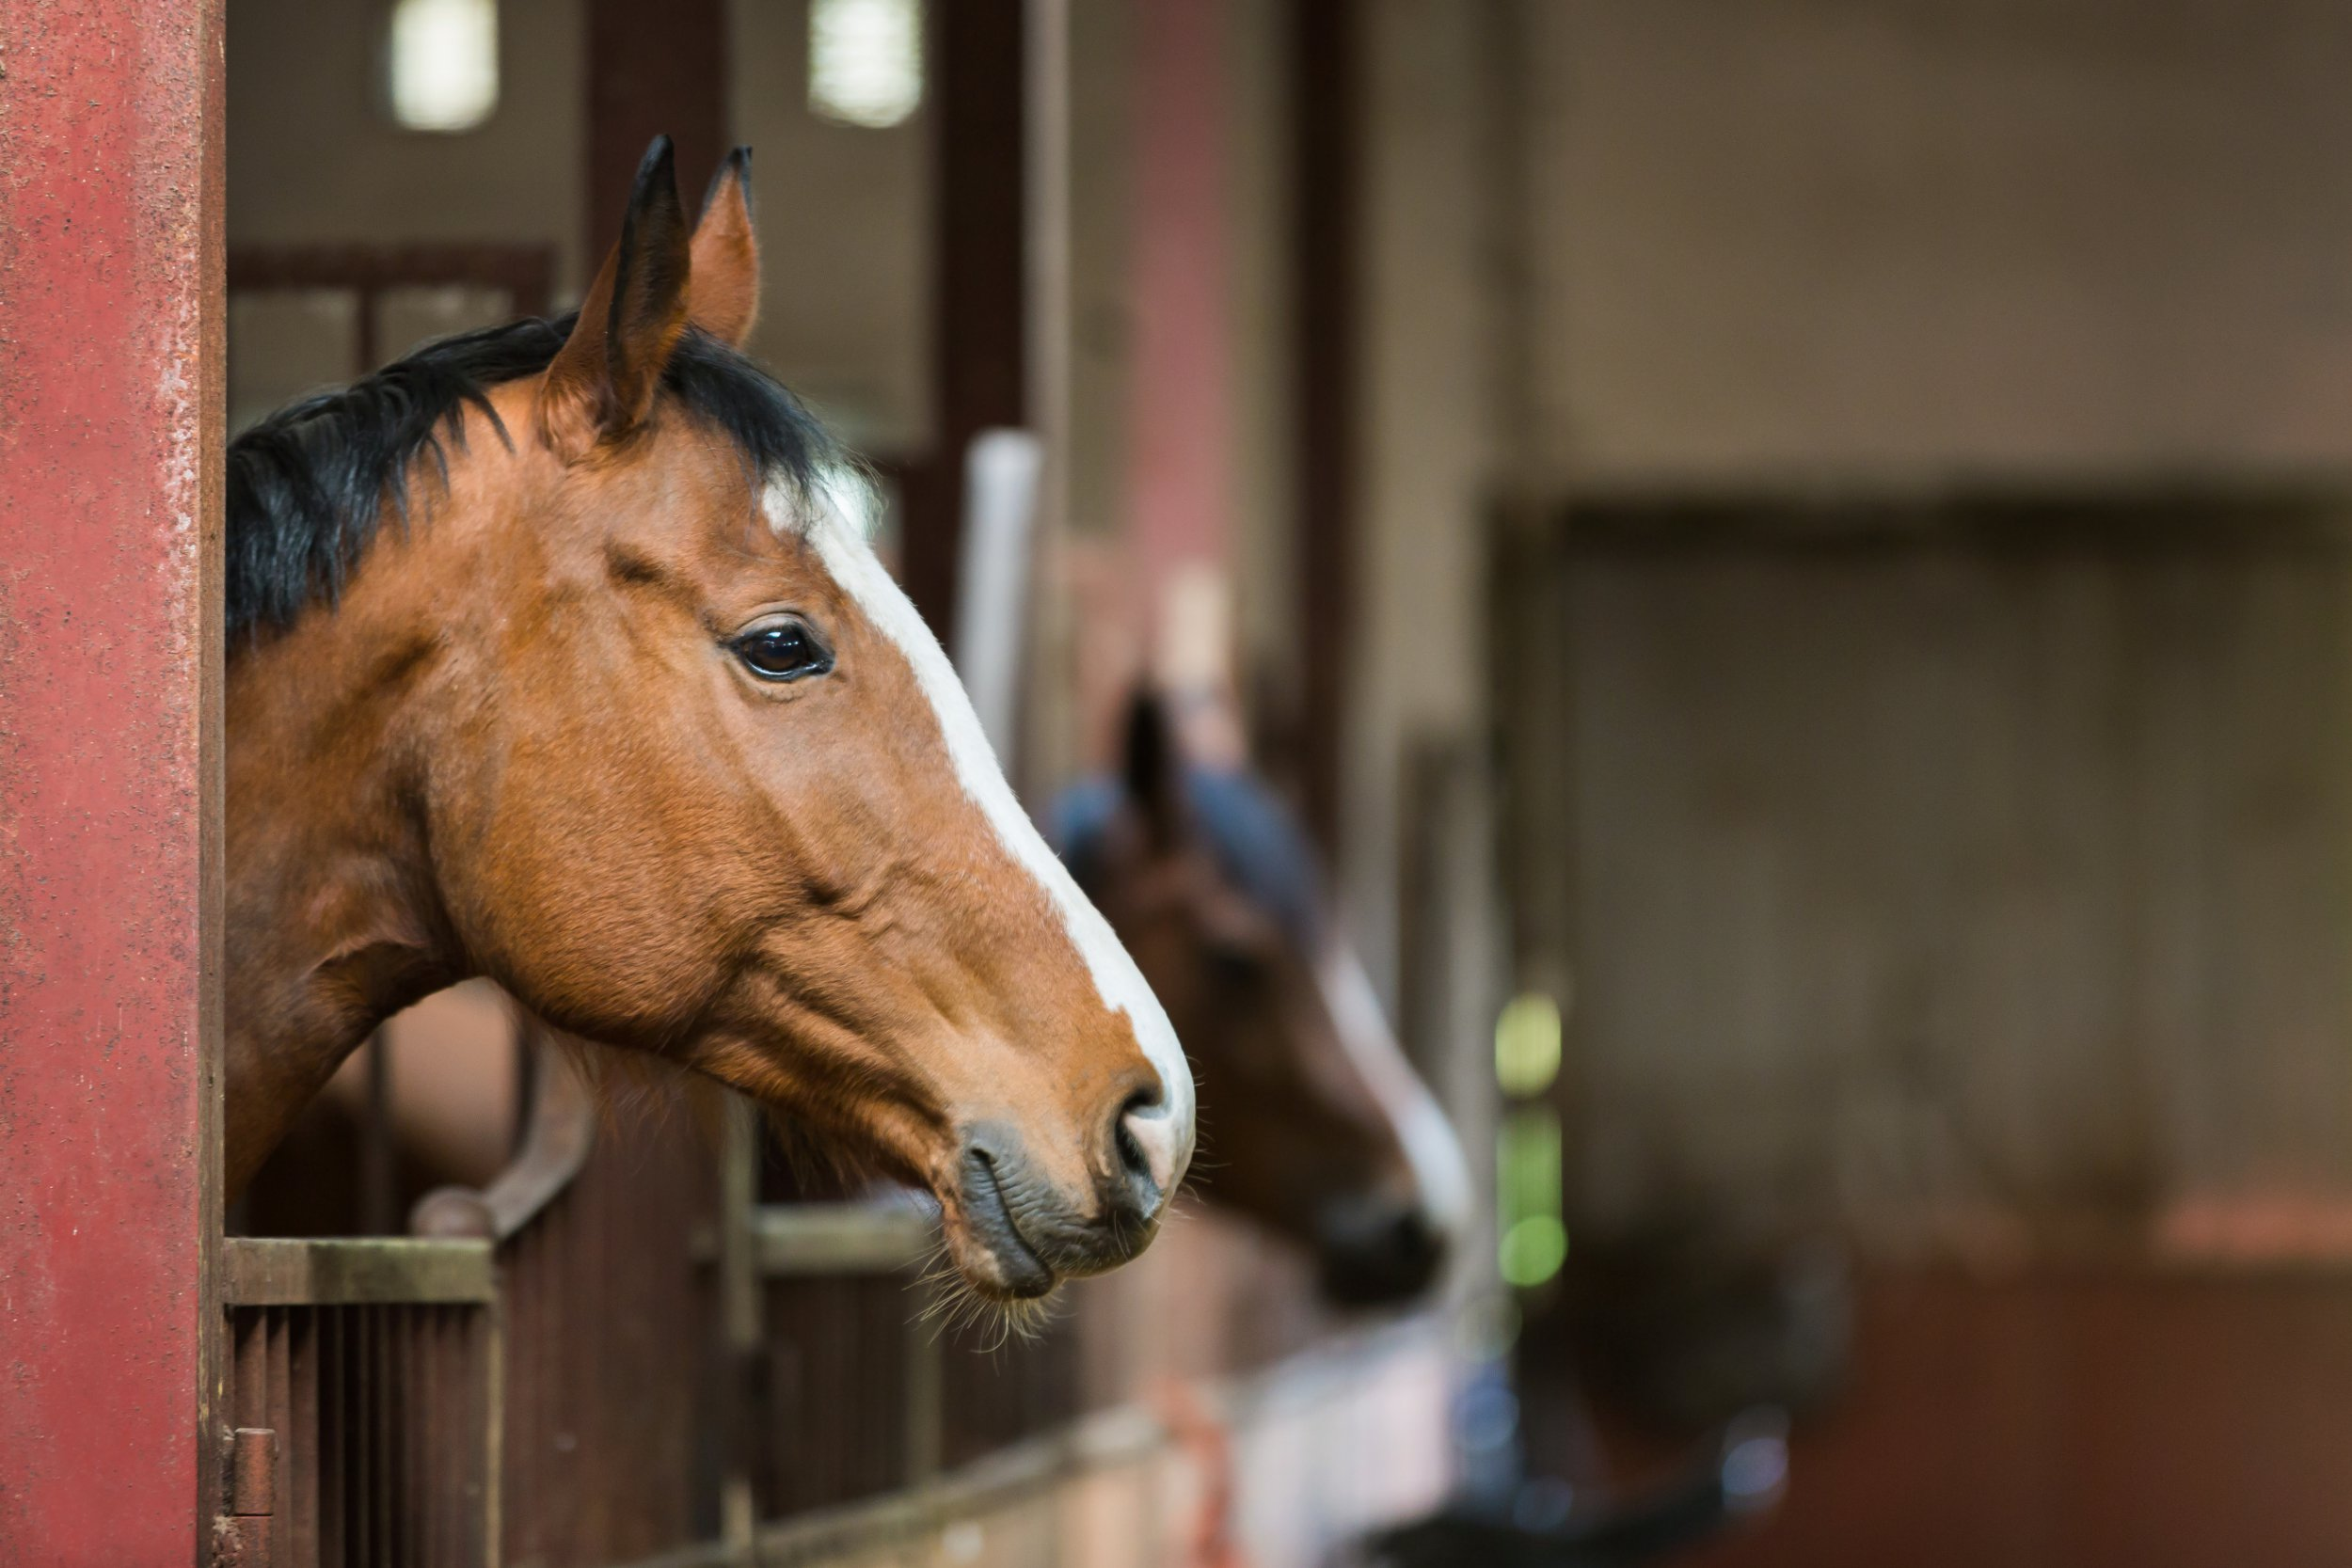 What is equine influenza and how does it affect horses?